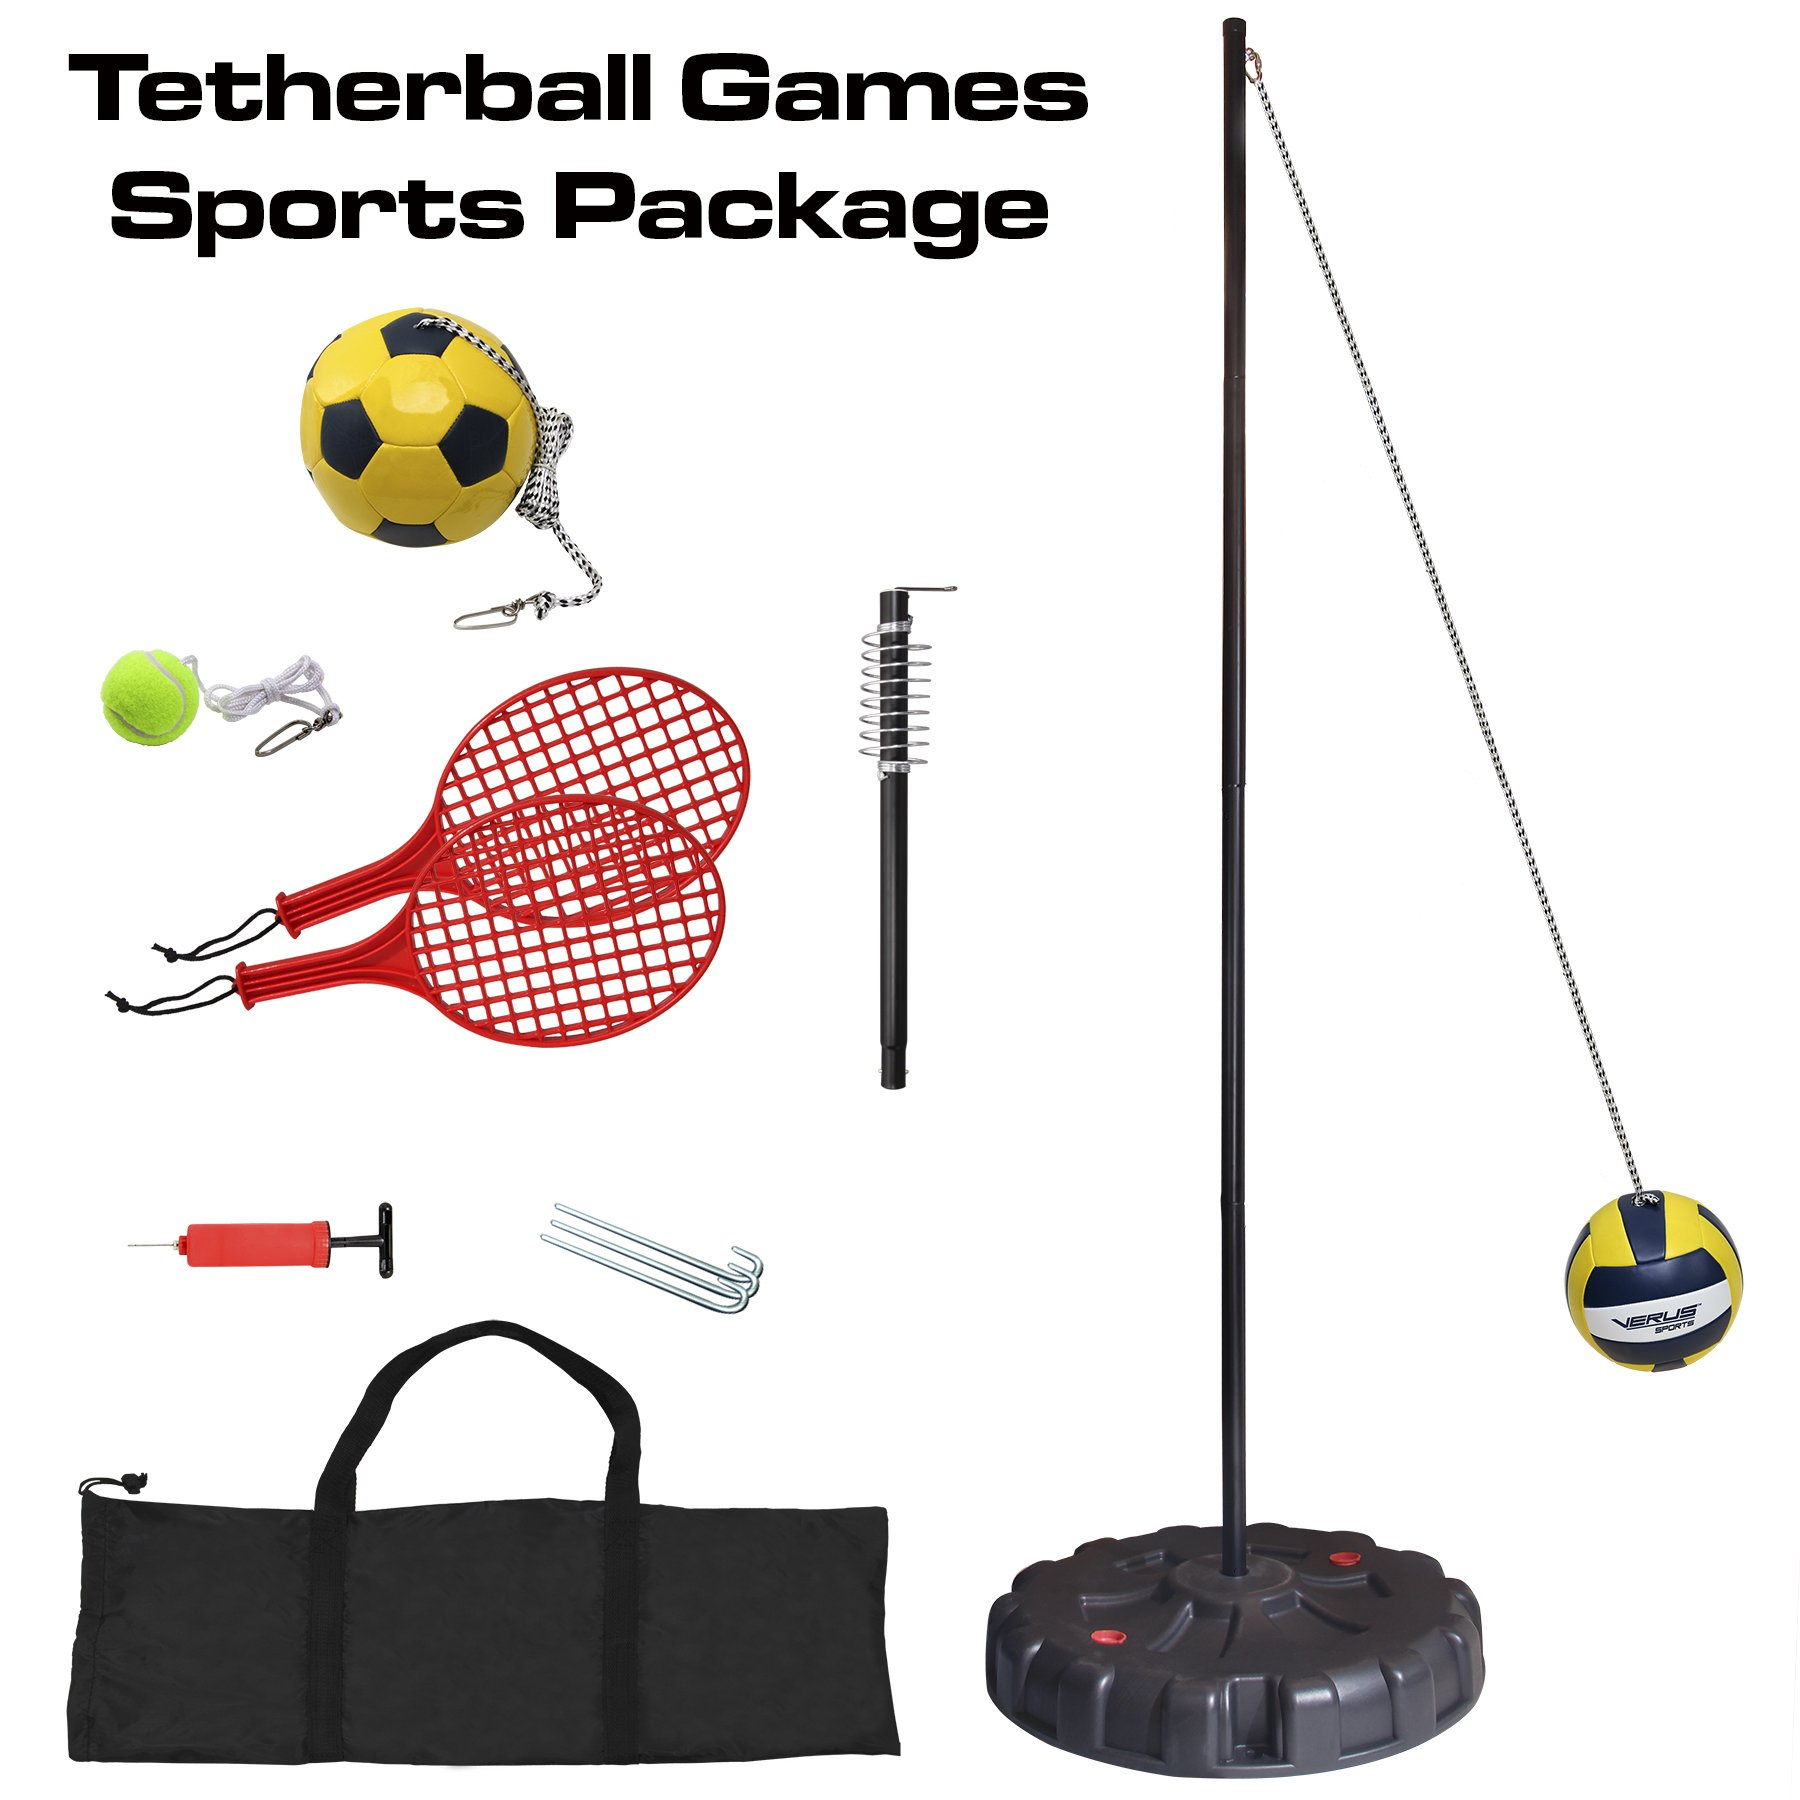 Verus Sports Portable 3-in-1 Tetherball Set by Verus Sports